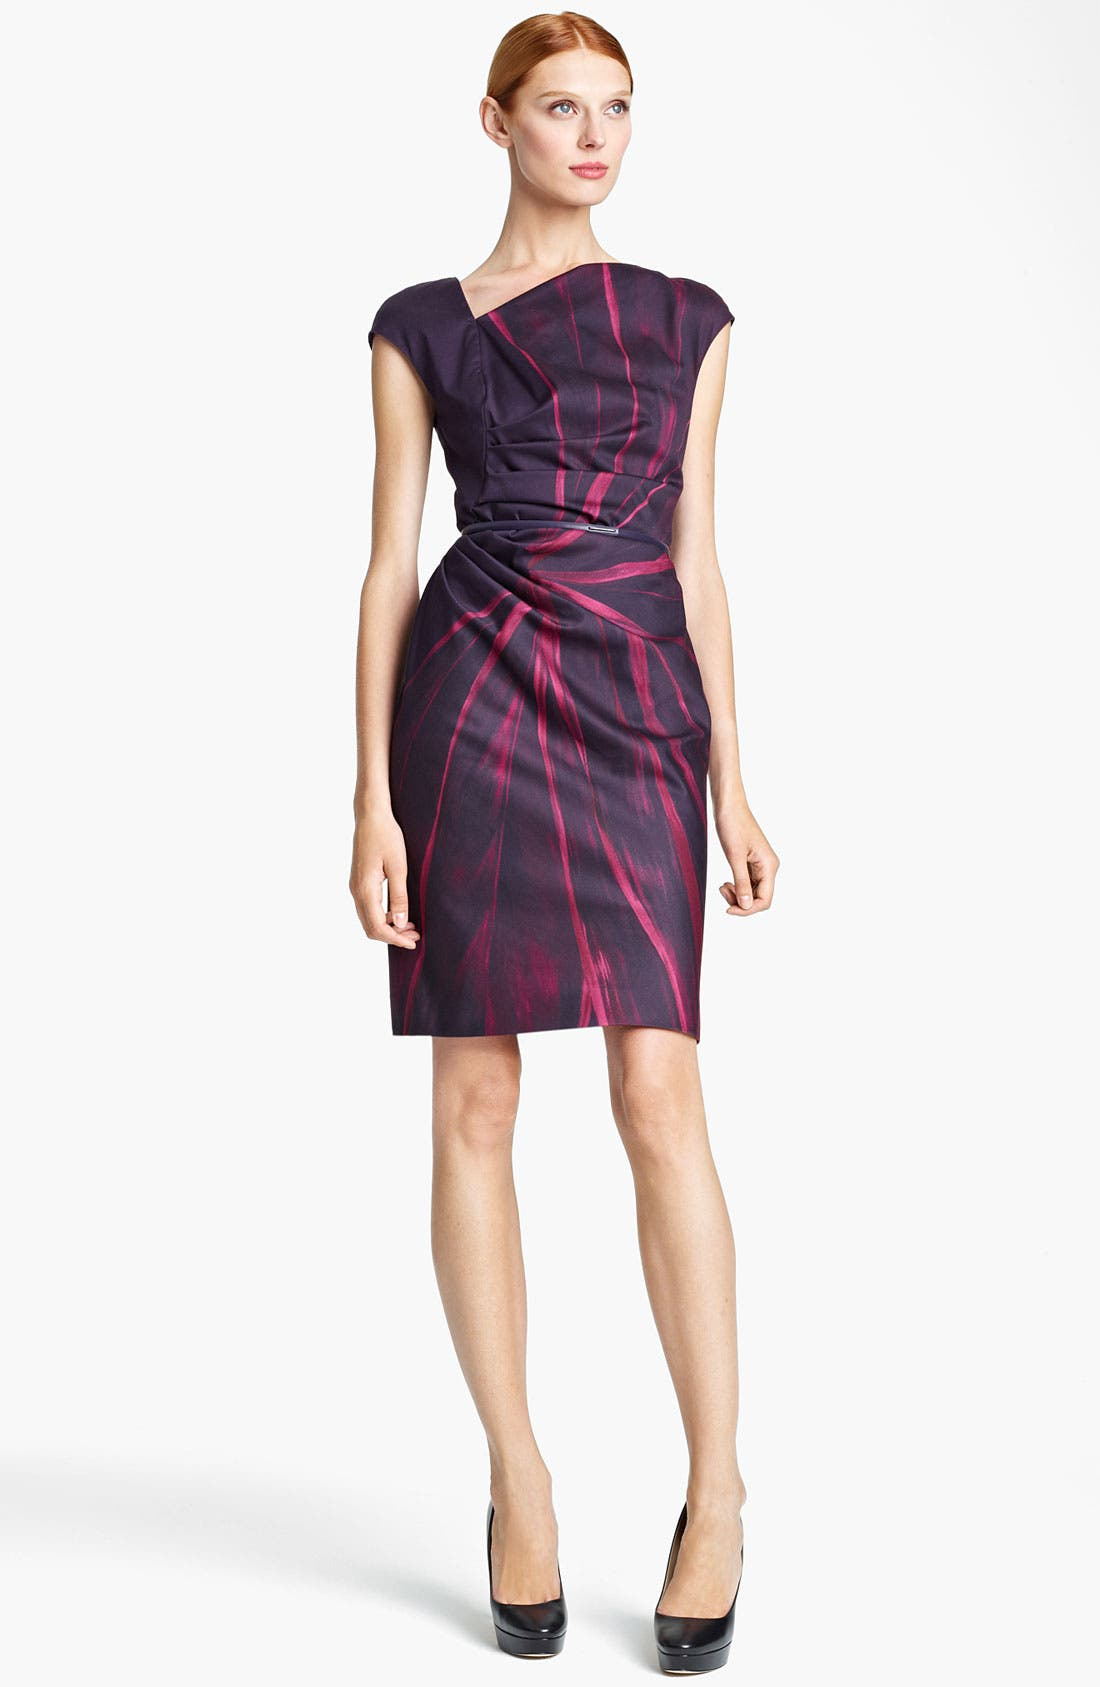 Alternate Image 1 Selected - Max Mara 'Pallore' Belted Abstract Print Dress